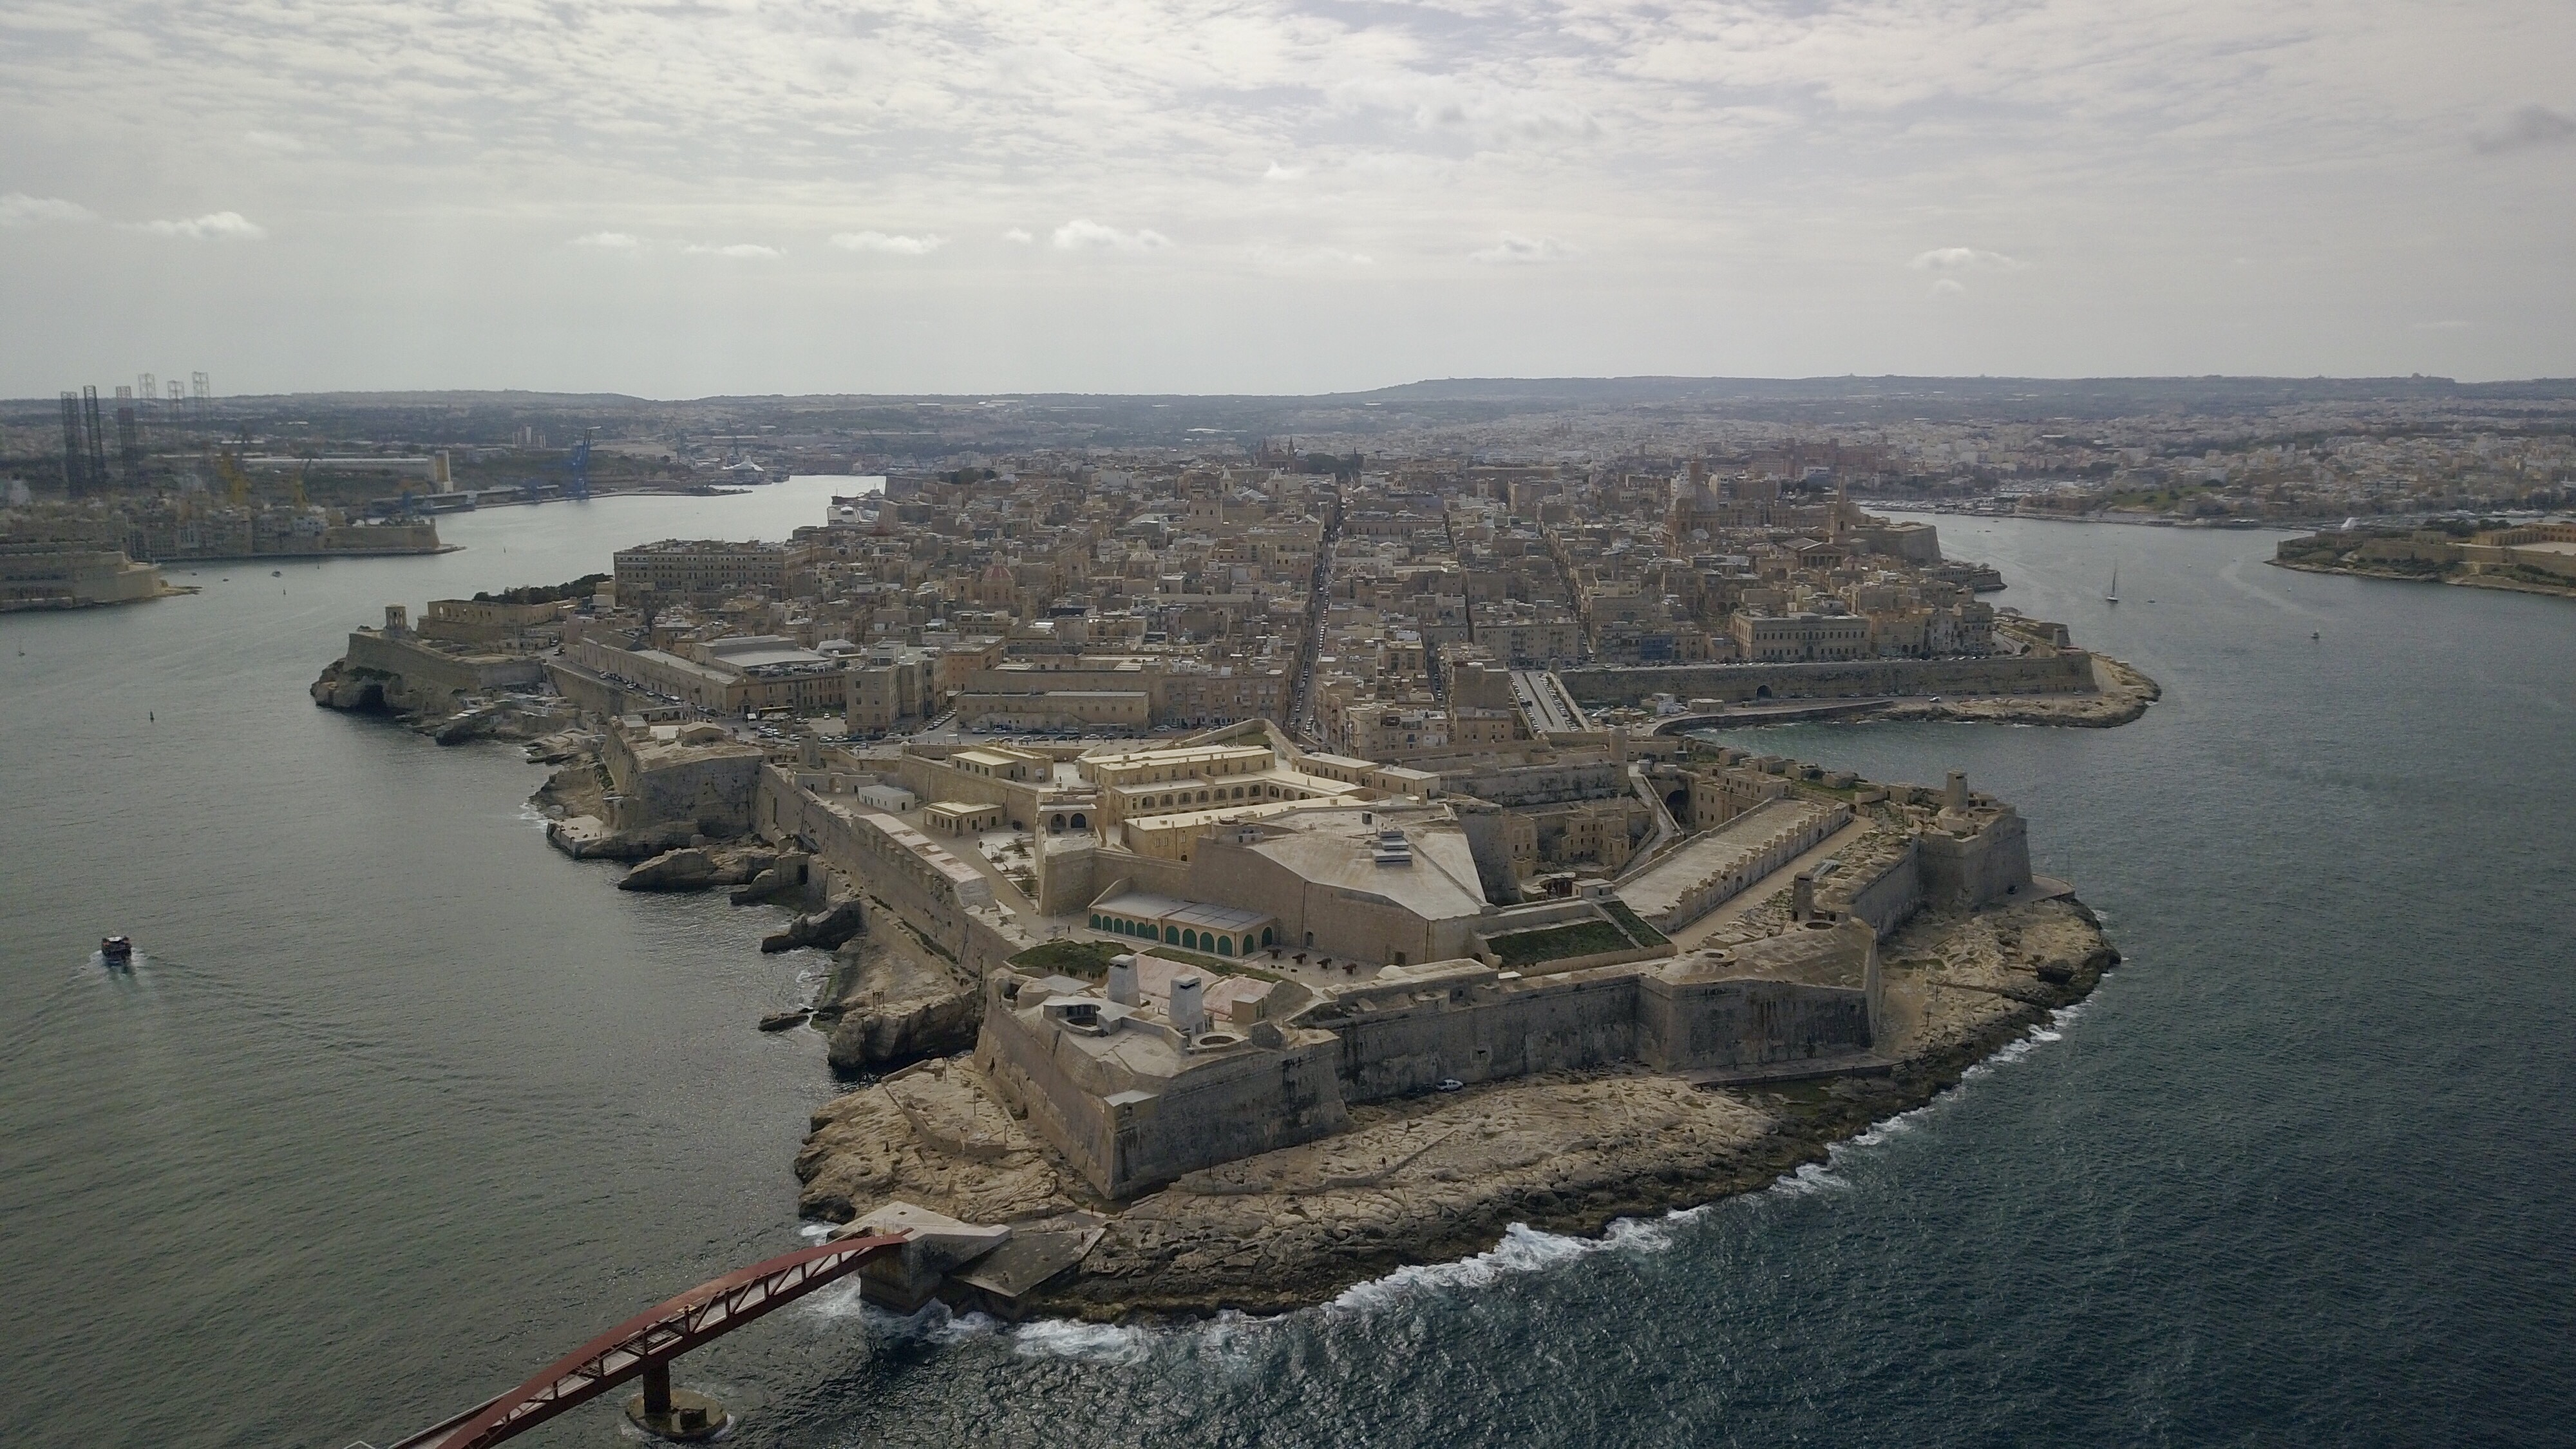 The old town of Valletta, as photographed by drone on February 24, 2018.